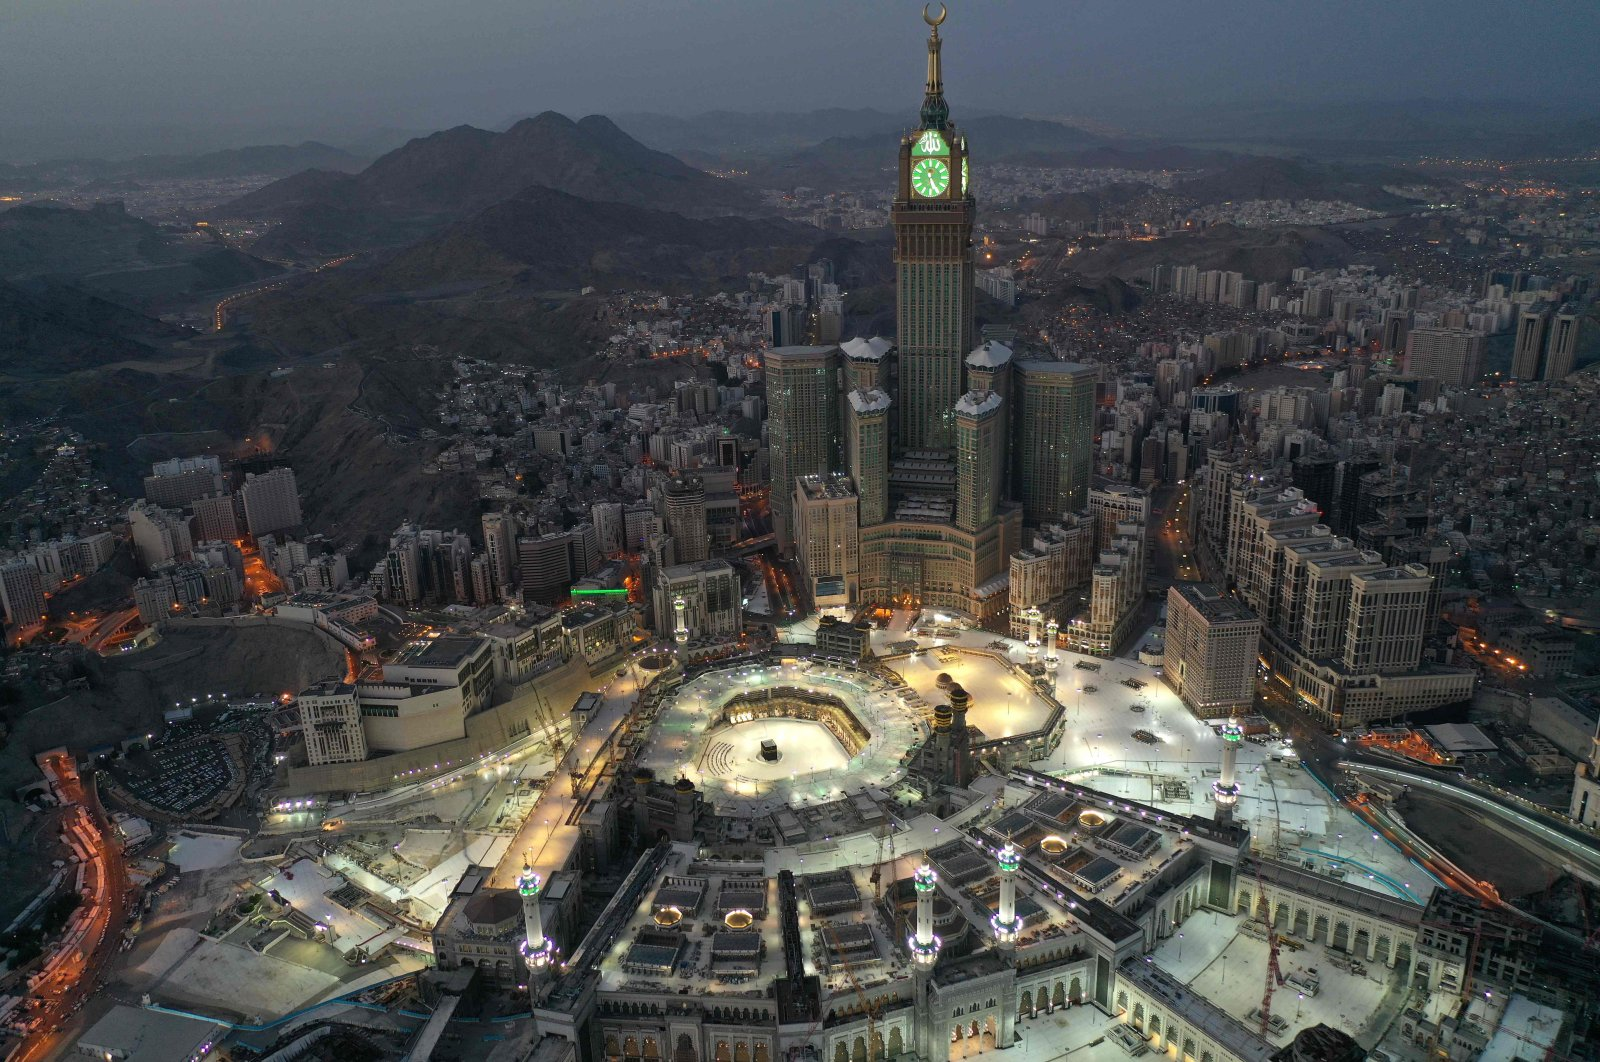 An aerial view of Saudi Arabia's holy city of Mecca, with the Abraj al-Bait Mecca Royal Clock Tower overlooking the Grand Mosque and Kaaba in the center, is seen during the early hours of Ramadan Bayram, the Muslim holiday marking the end of the holy fasting month of Ramadan, May 24, 2020. (AFP Photo)